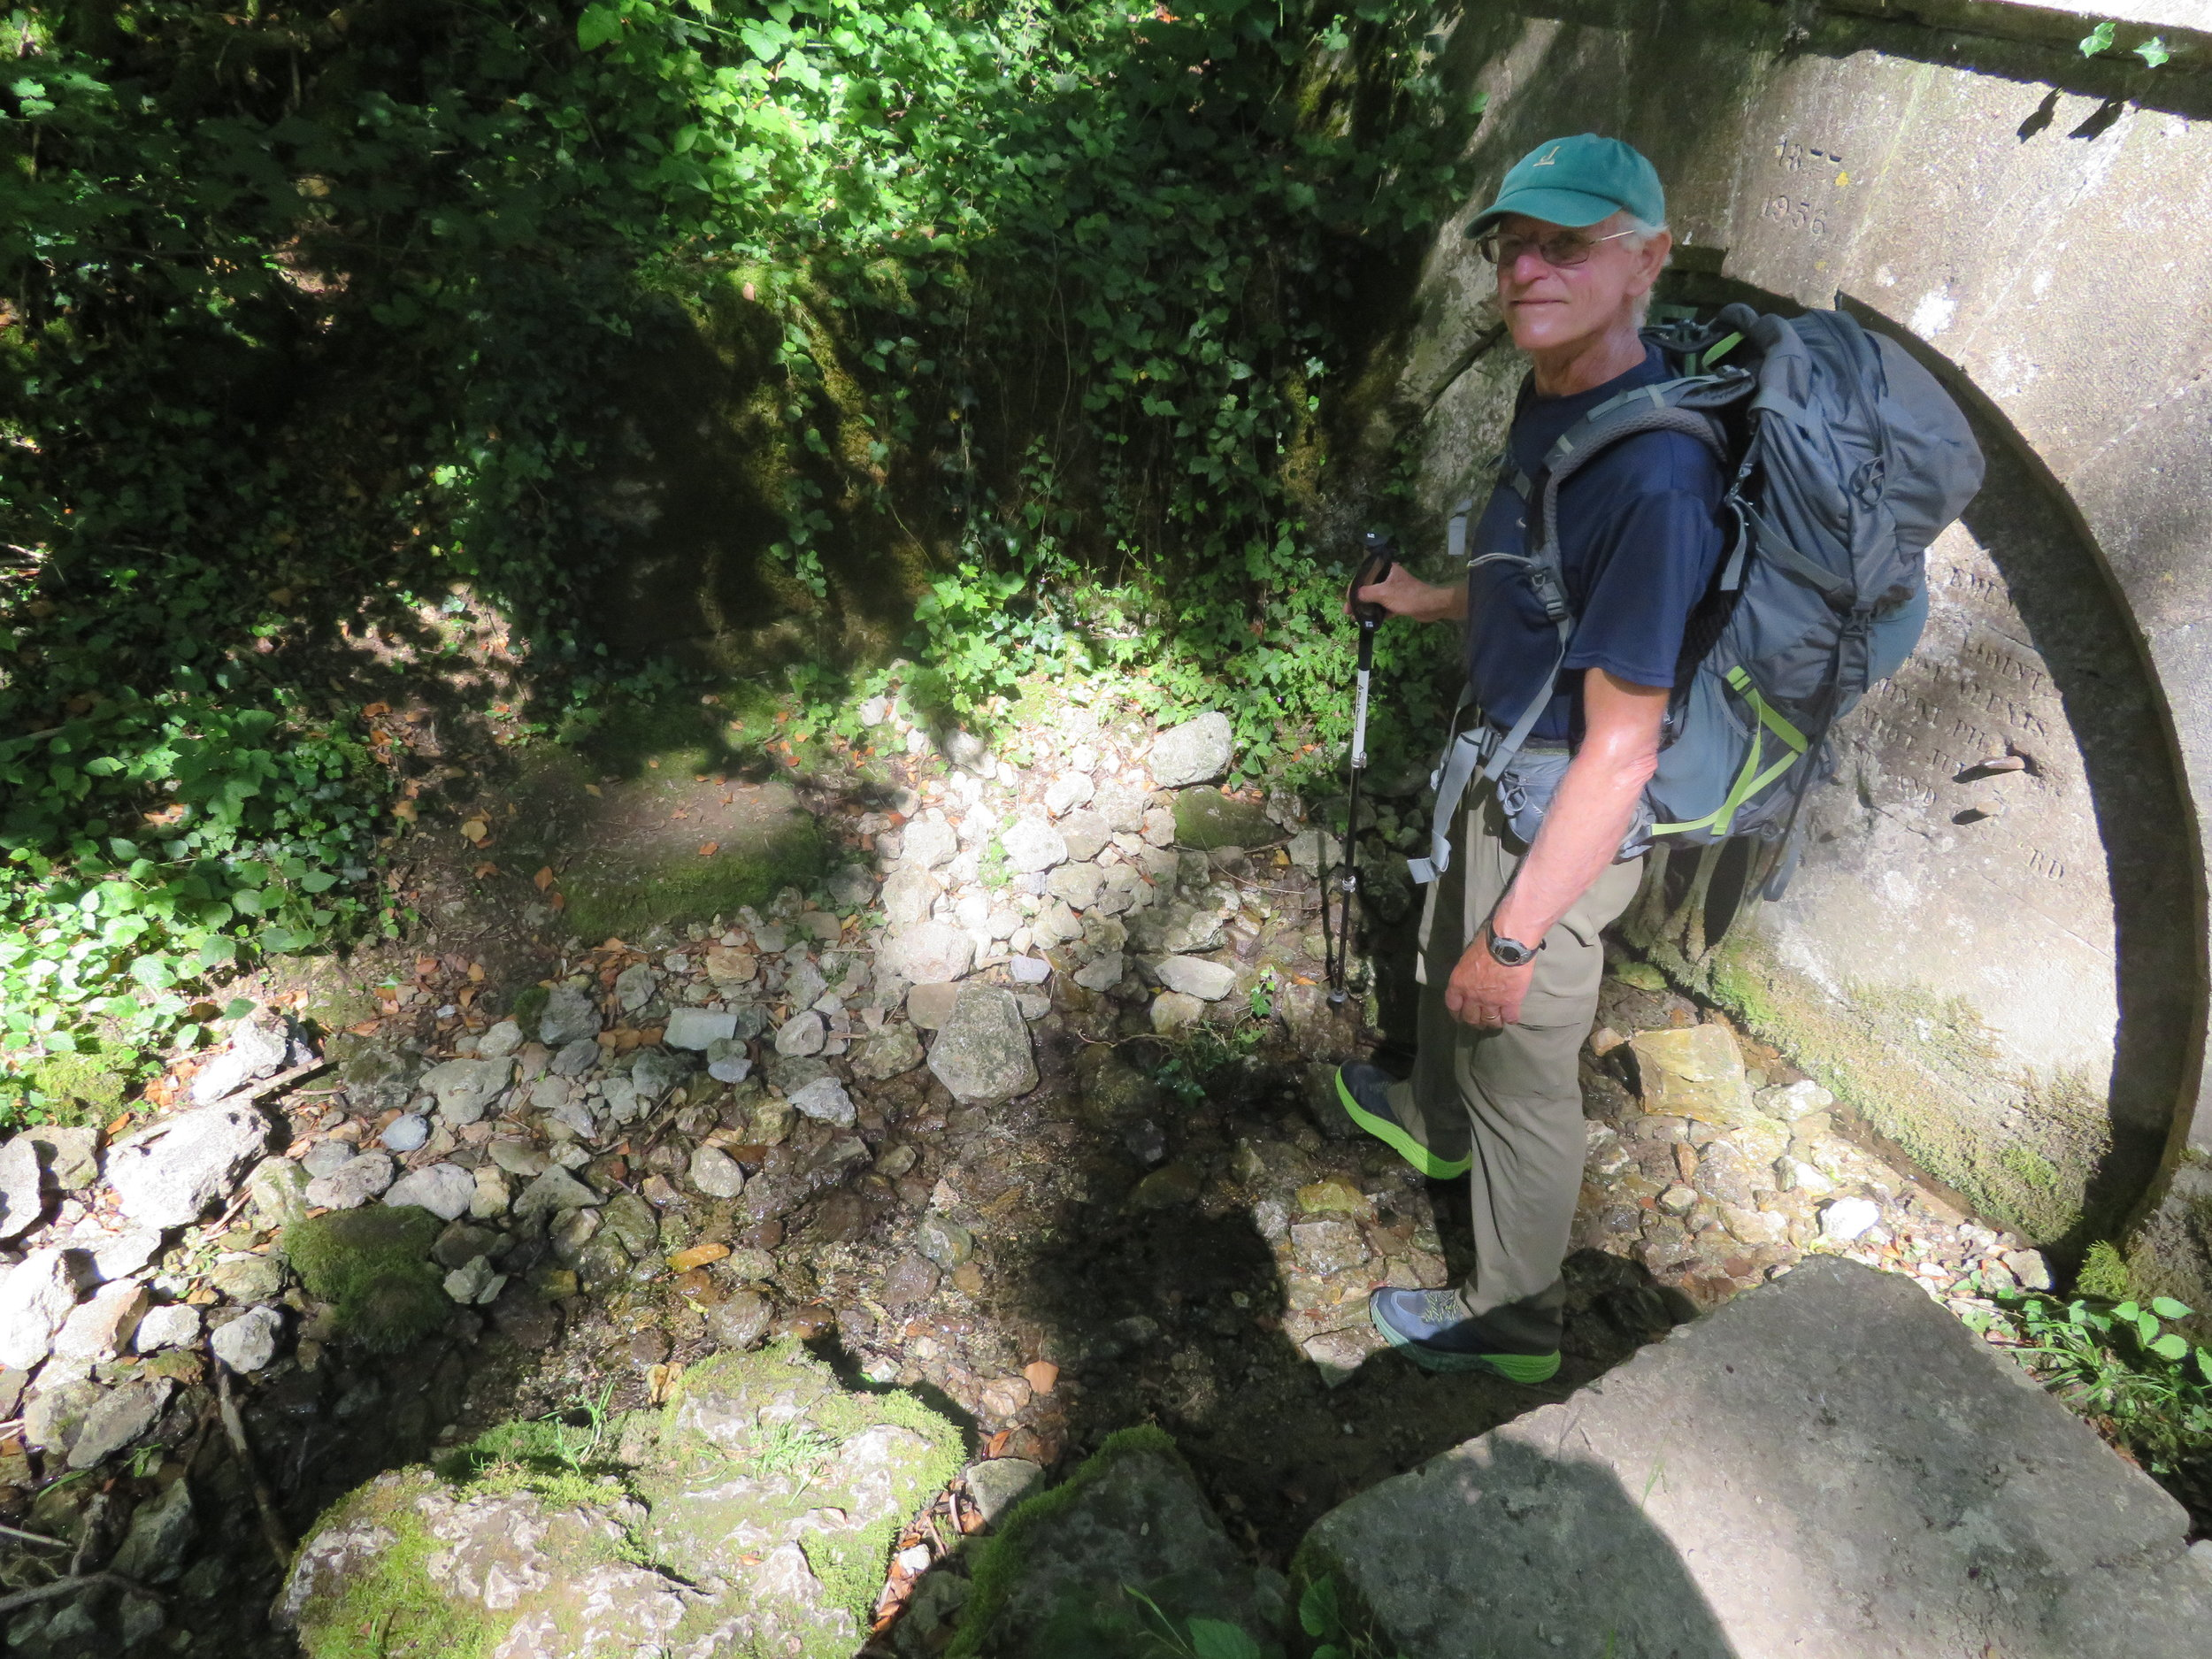 The Source of the Marne River … not very impressive, but a river has got to start somewhere!